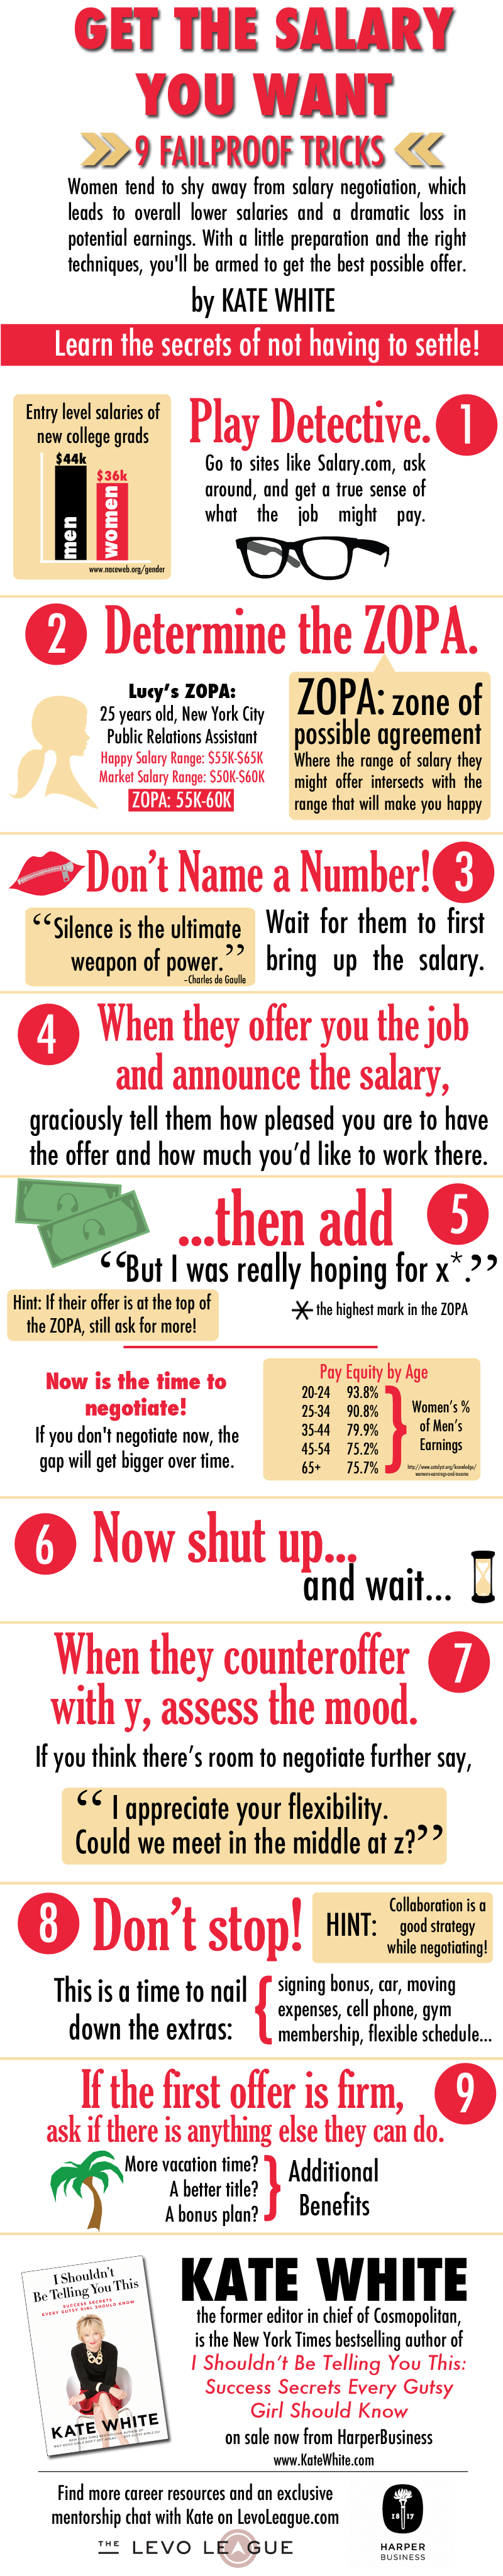 9 Effective Tips for Salary Negotiation